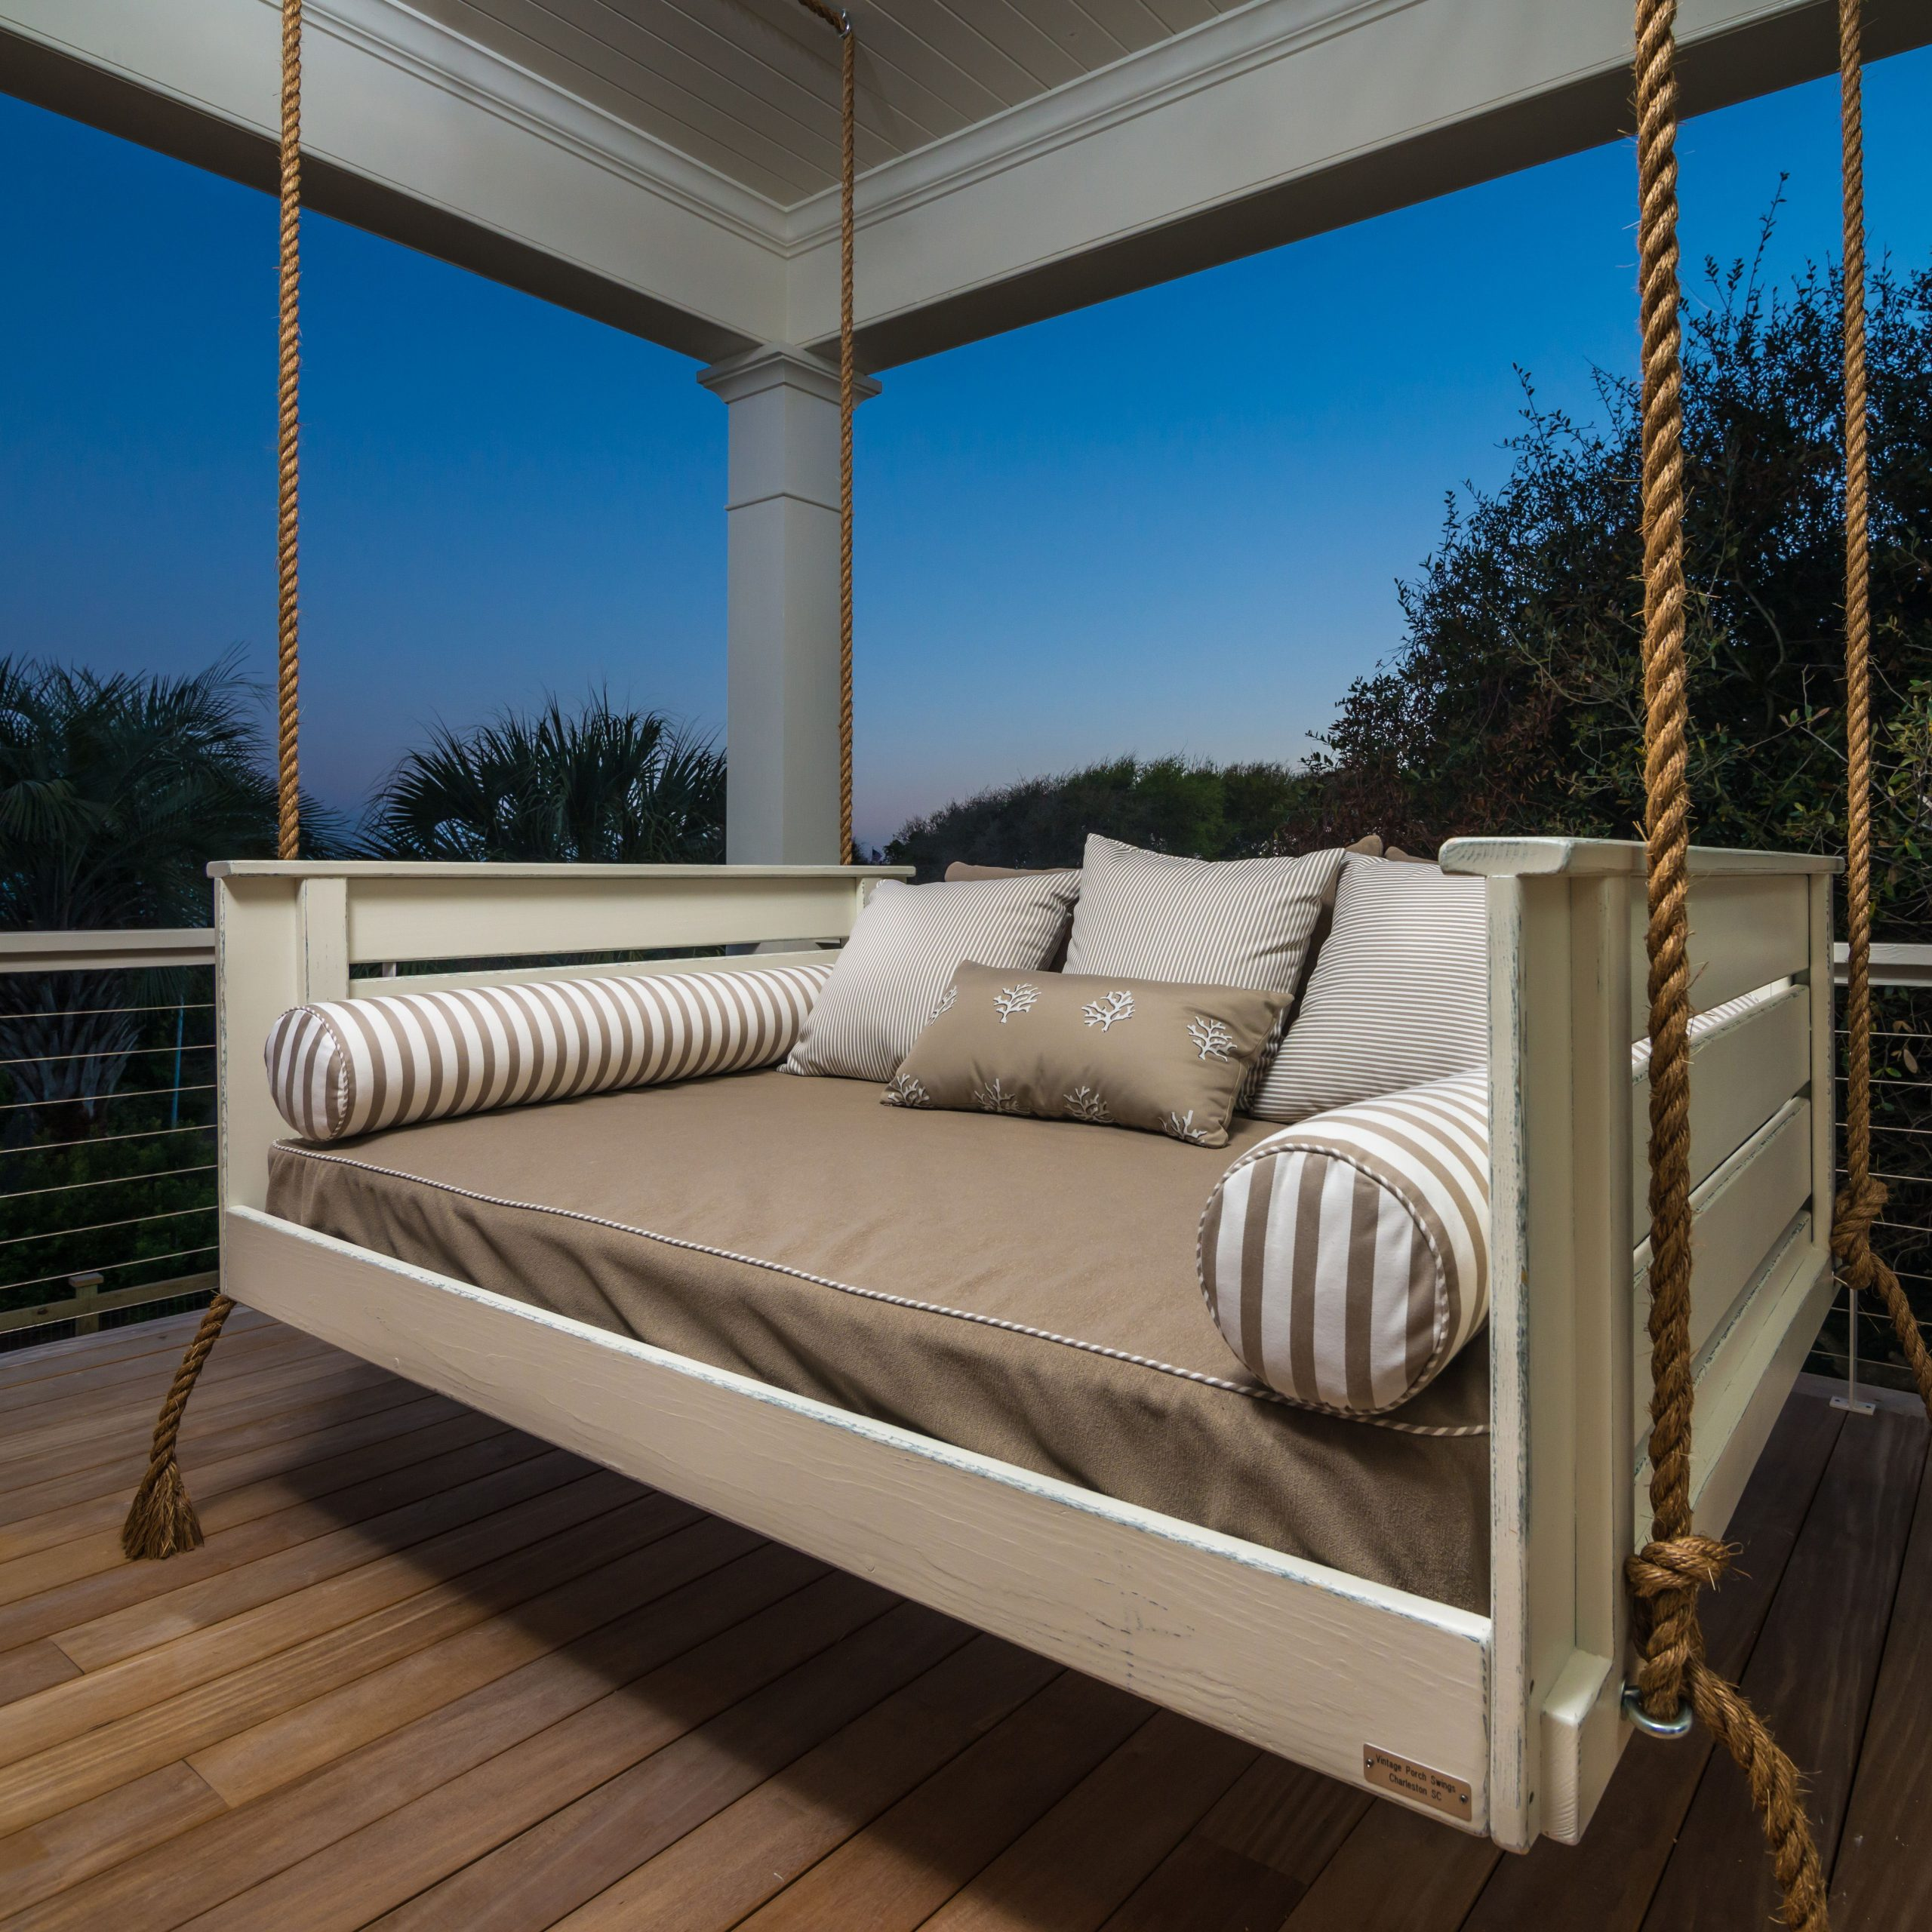 Incredible Swinging Outdoor Beds – Trend Design Models With Regard To Day Bed Porch Swings (View 12 of 25)